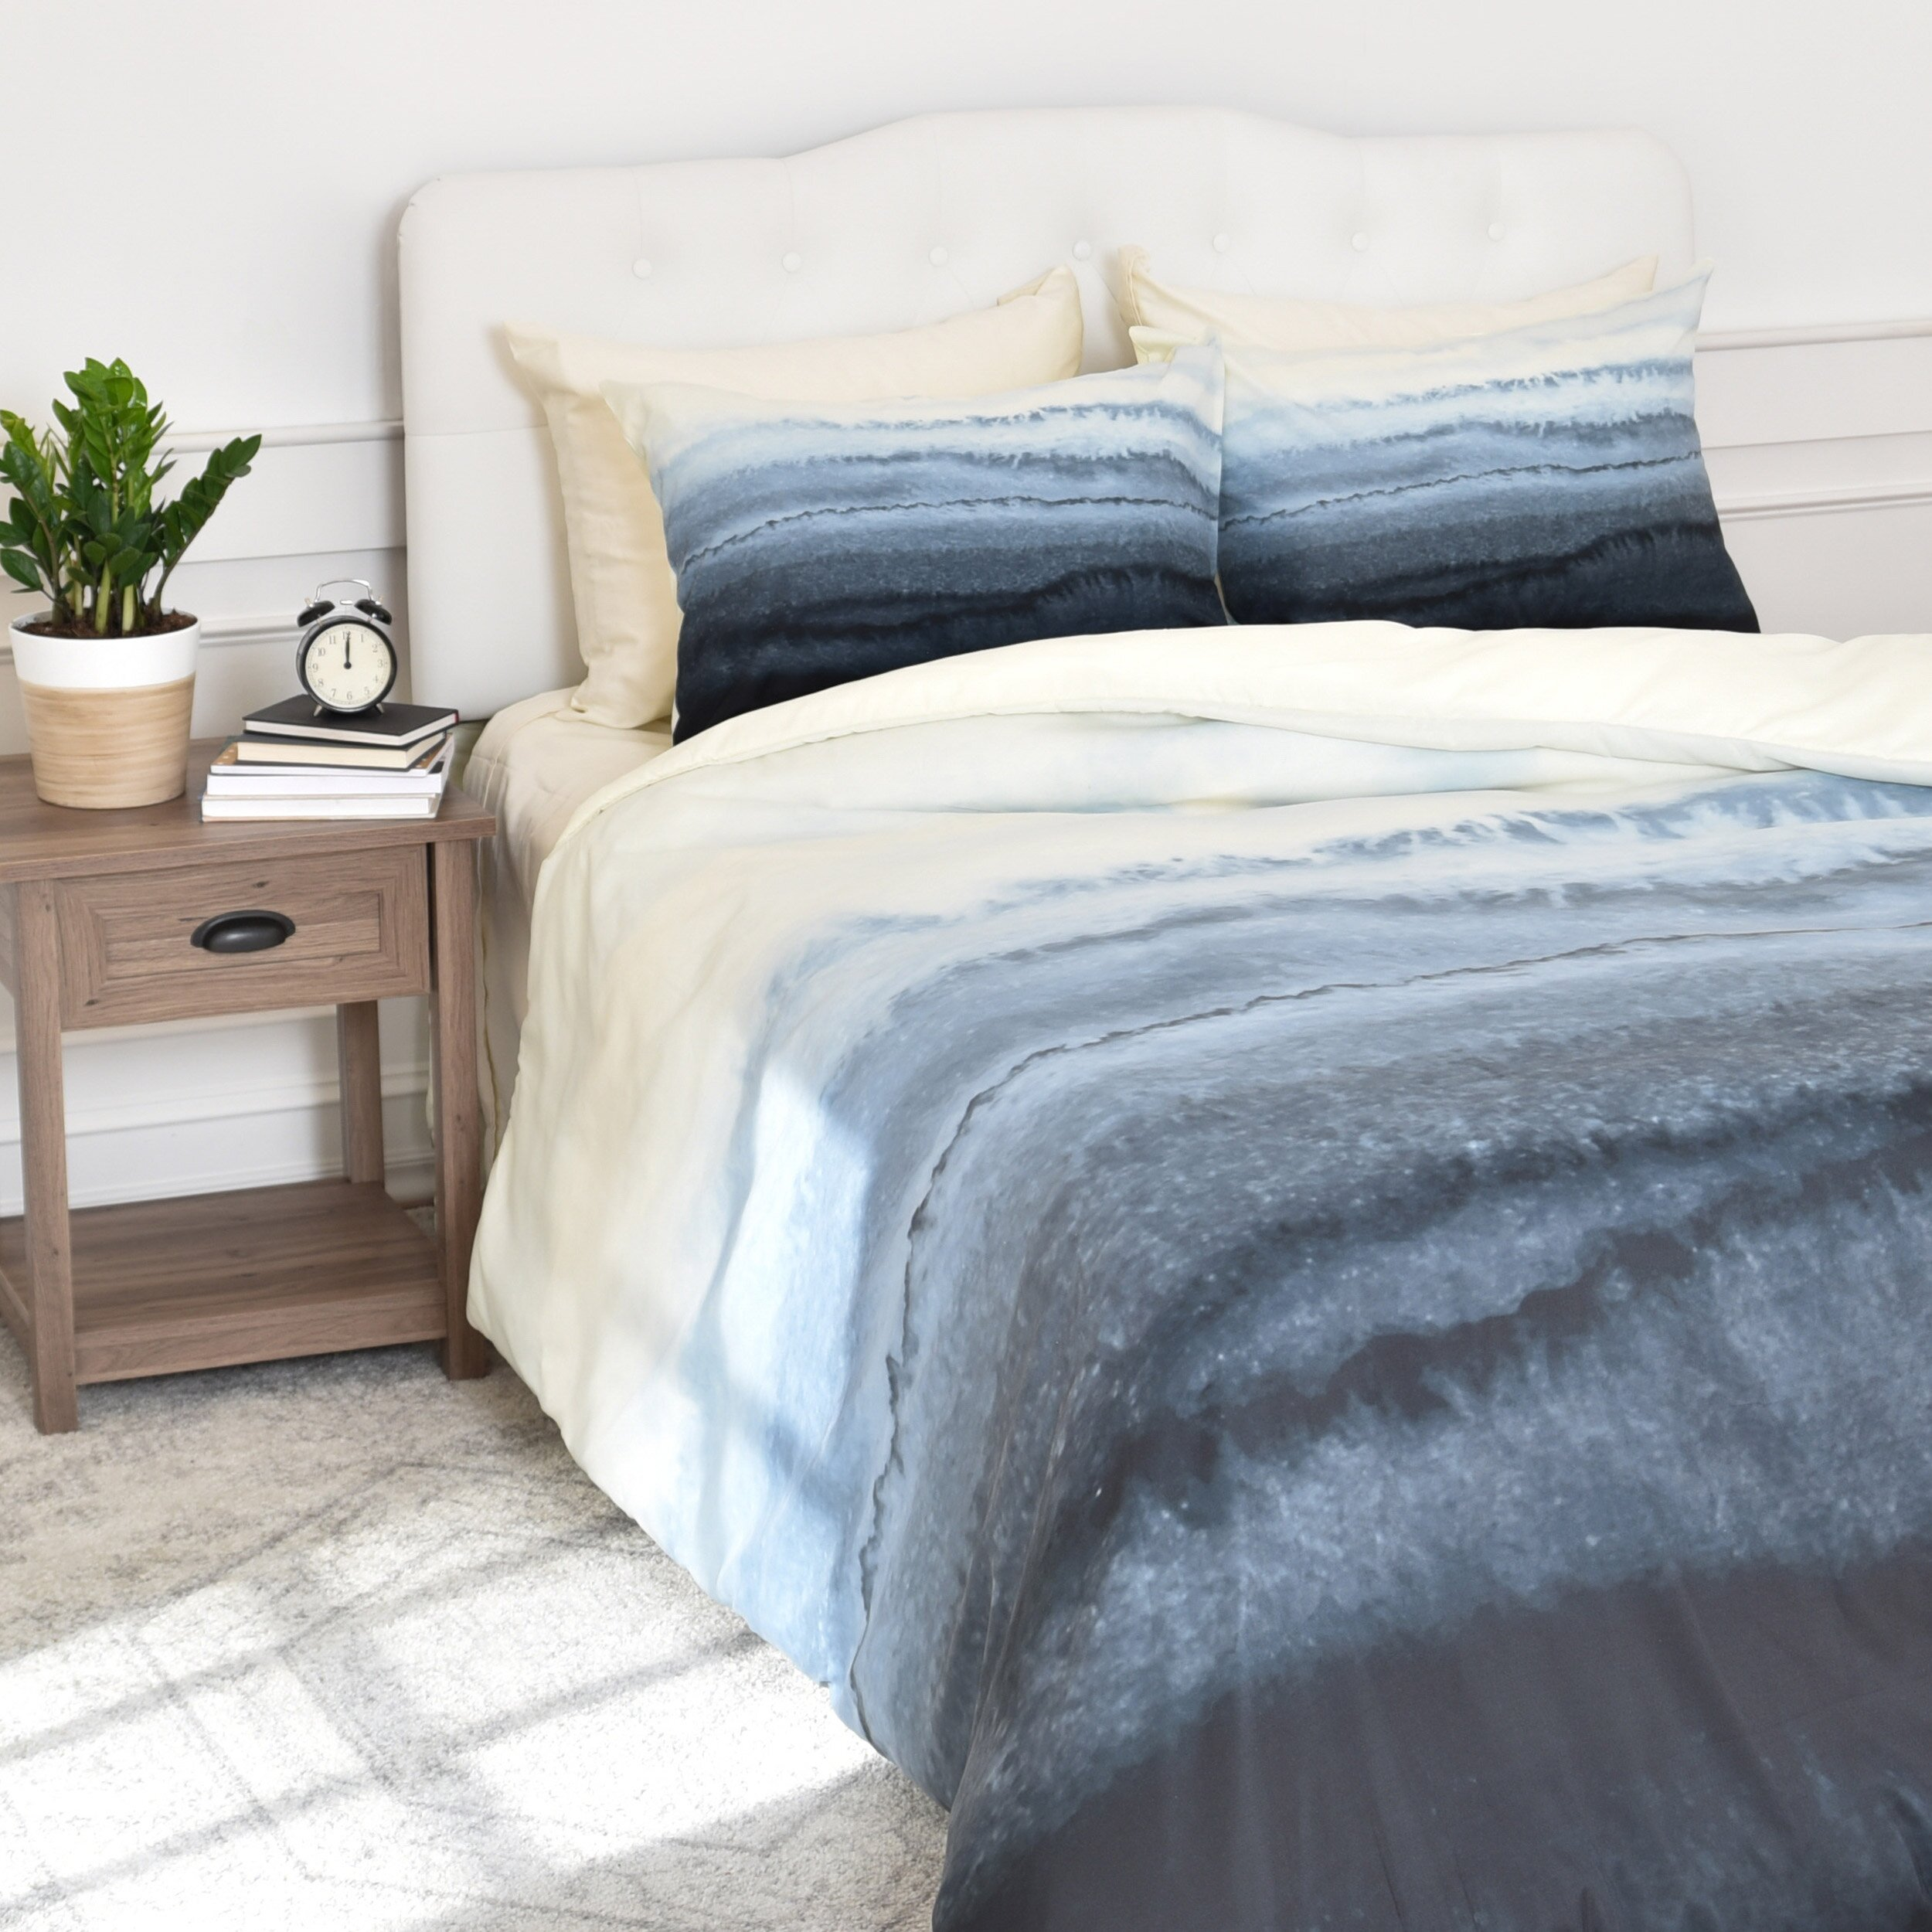 Brayden studio granado within the tides stormy weather for Studio one bed cover